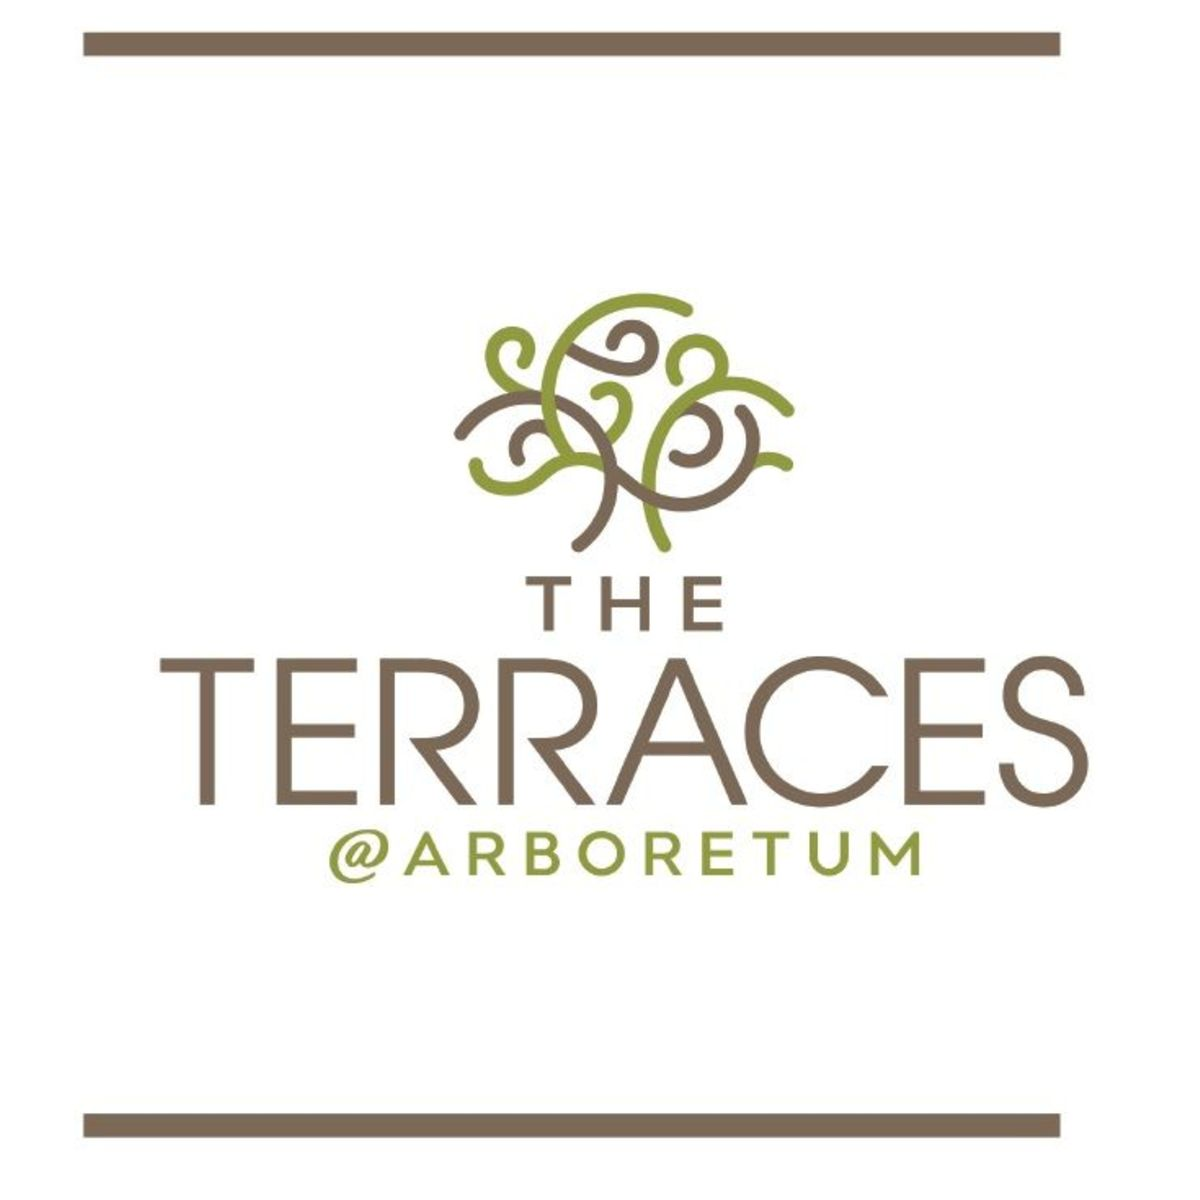 The Terraces at Arboretum.jpg